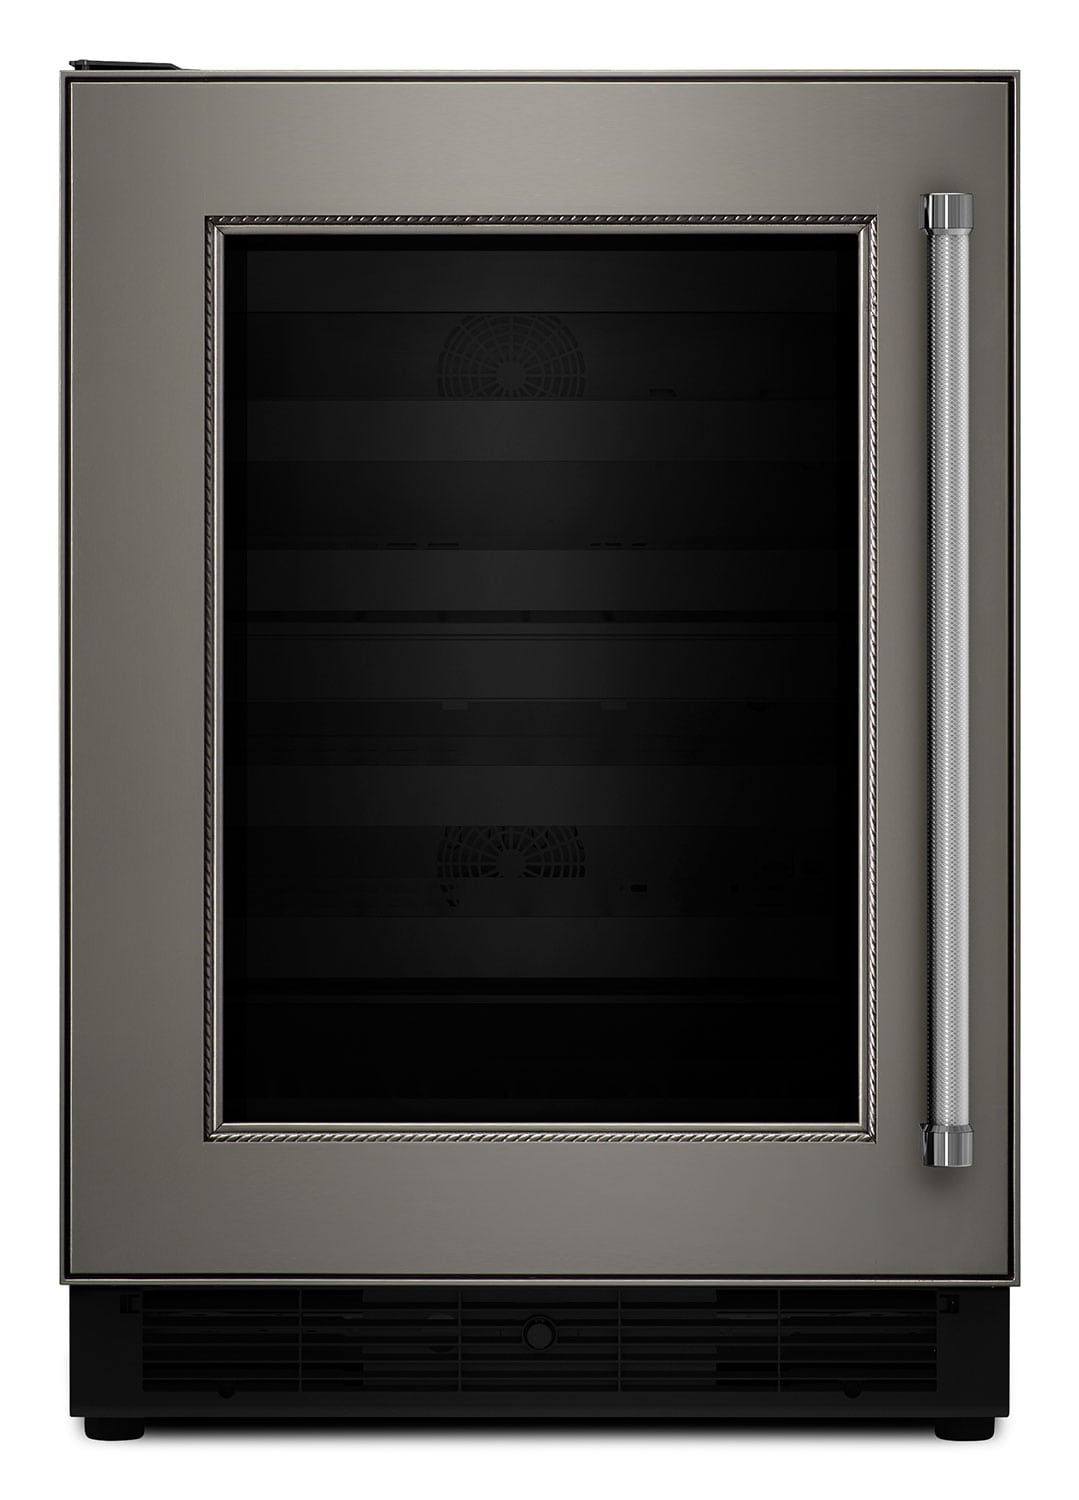 Refrigerators and Freezers - KitchenAid Wine Cellar – Panel Ready KUWL204EPA